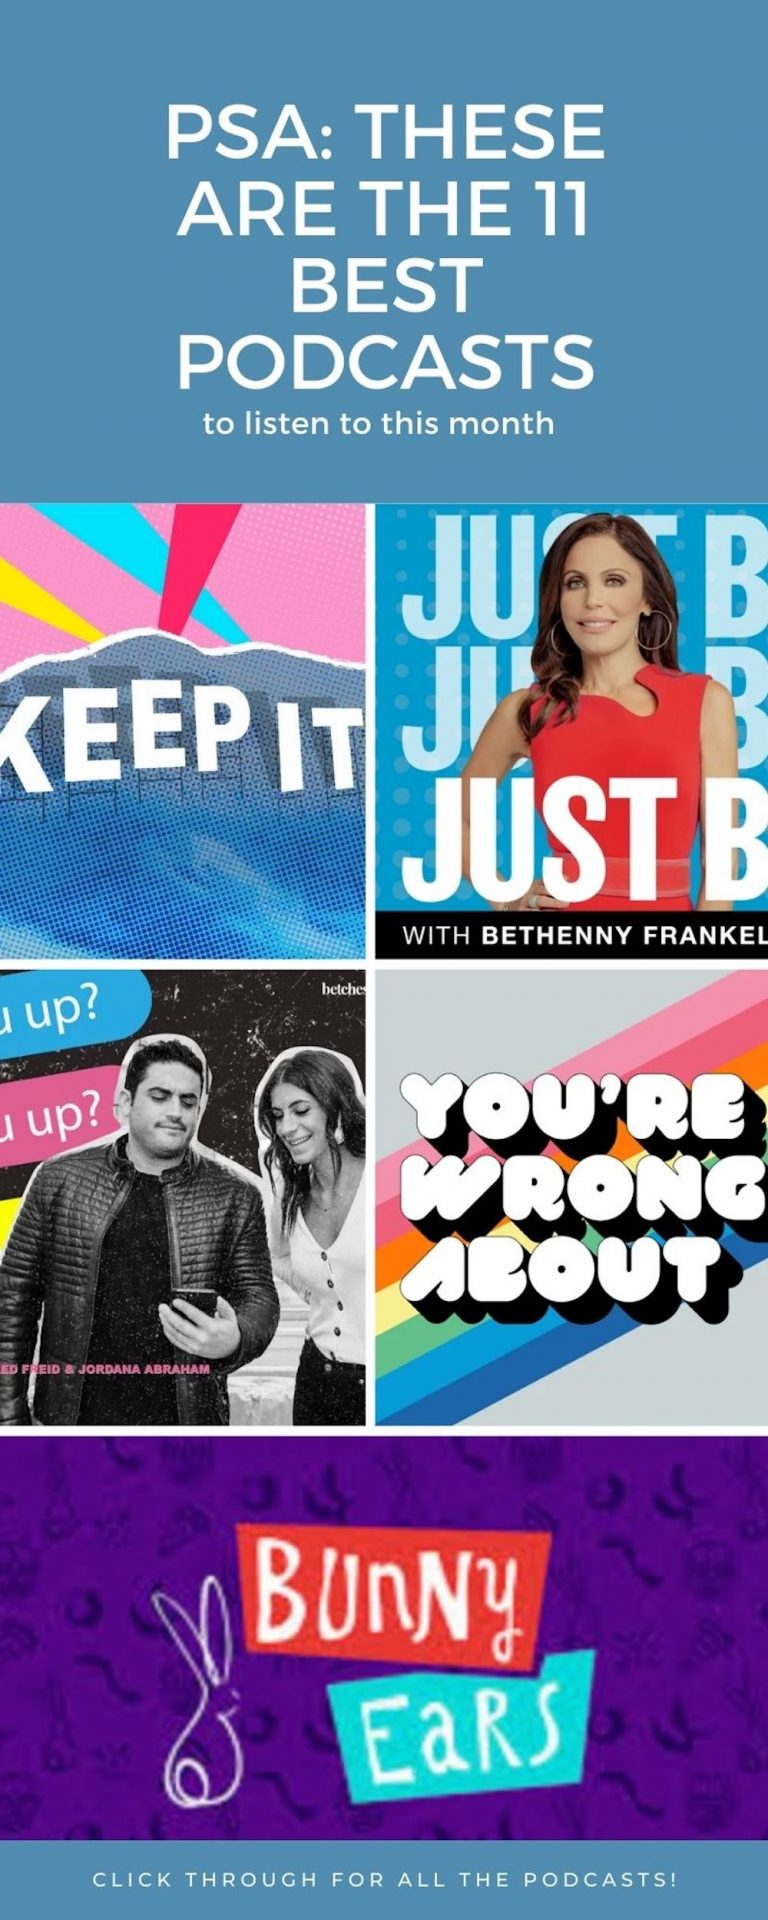 Pinterest - 11 Best Podcasts To Listen to This Month Roundup